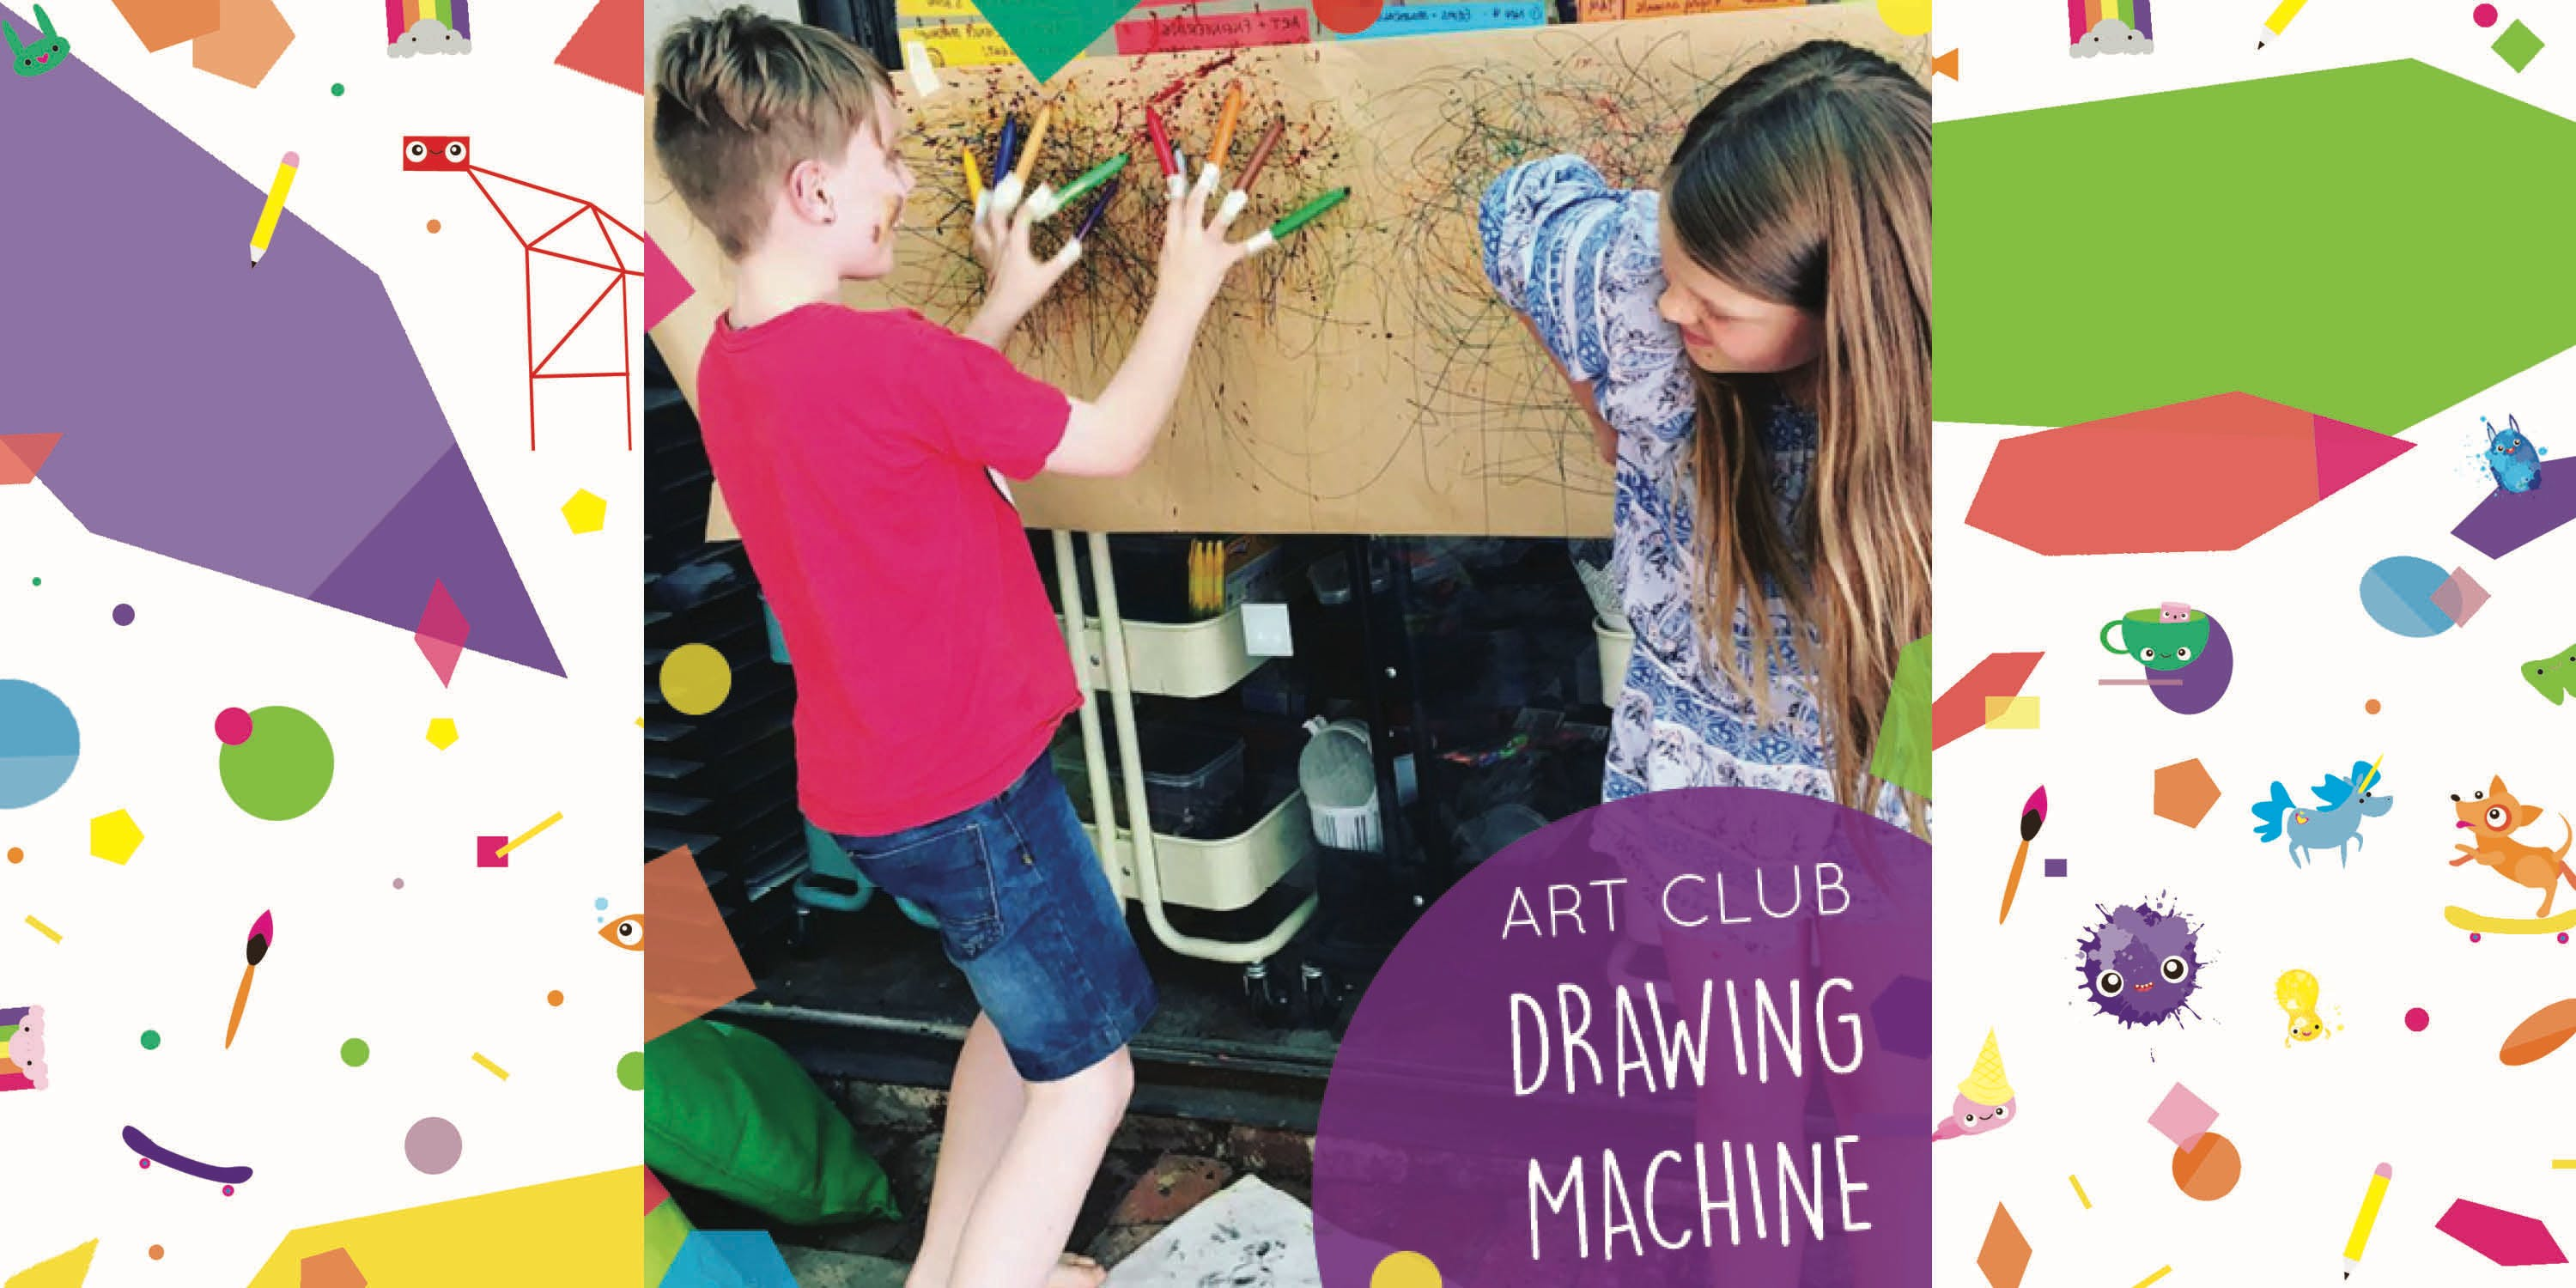 After School Art Club - DRAWING MACHINE